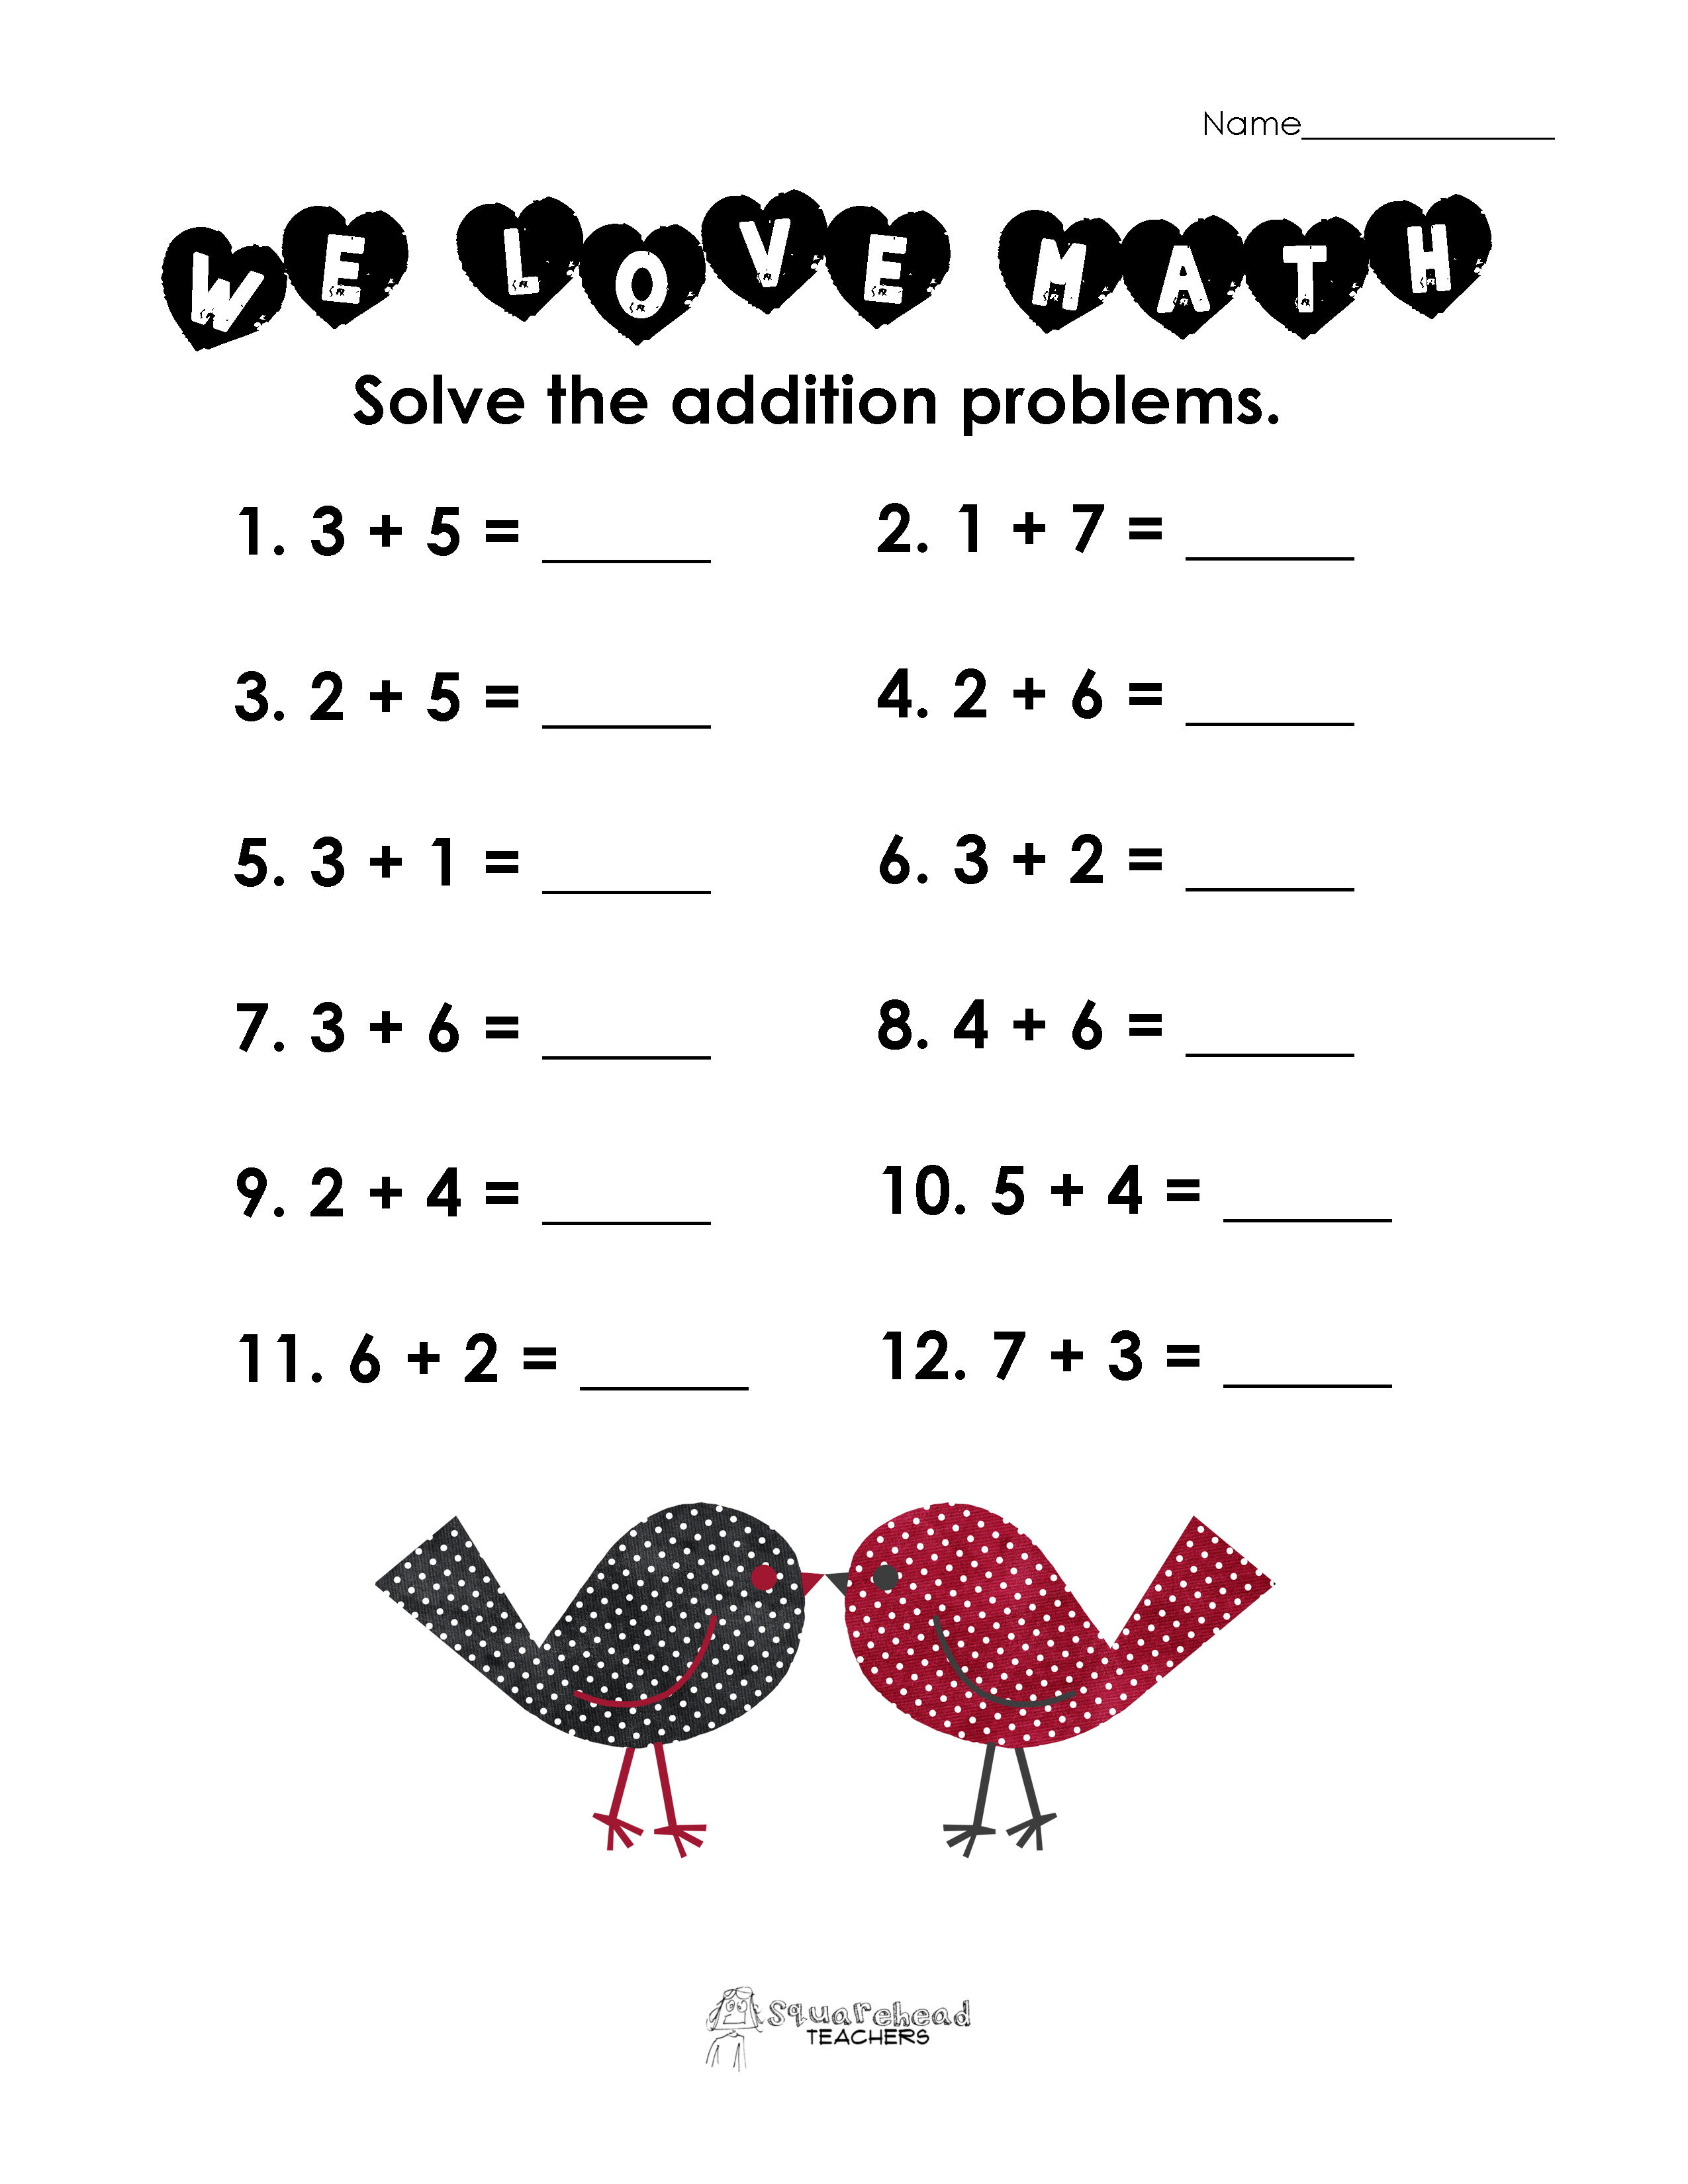 math worksheet : addition  squarehead teachers  page 3 : Basic Math Worksheets Pdf